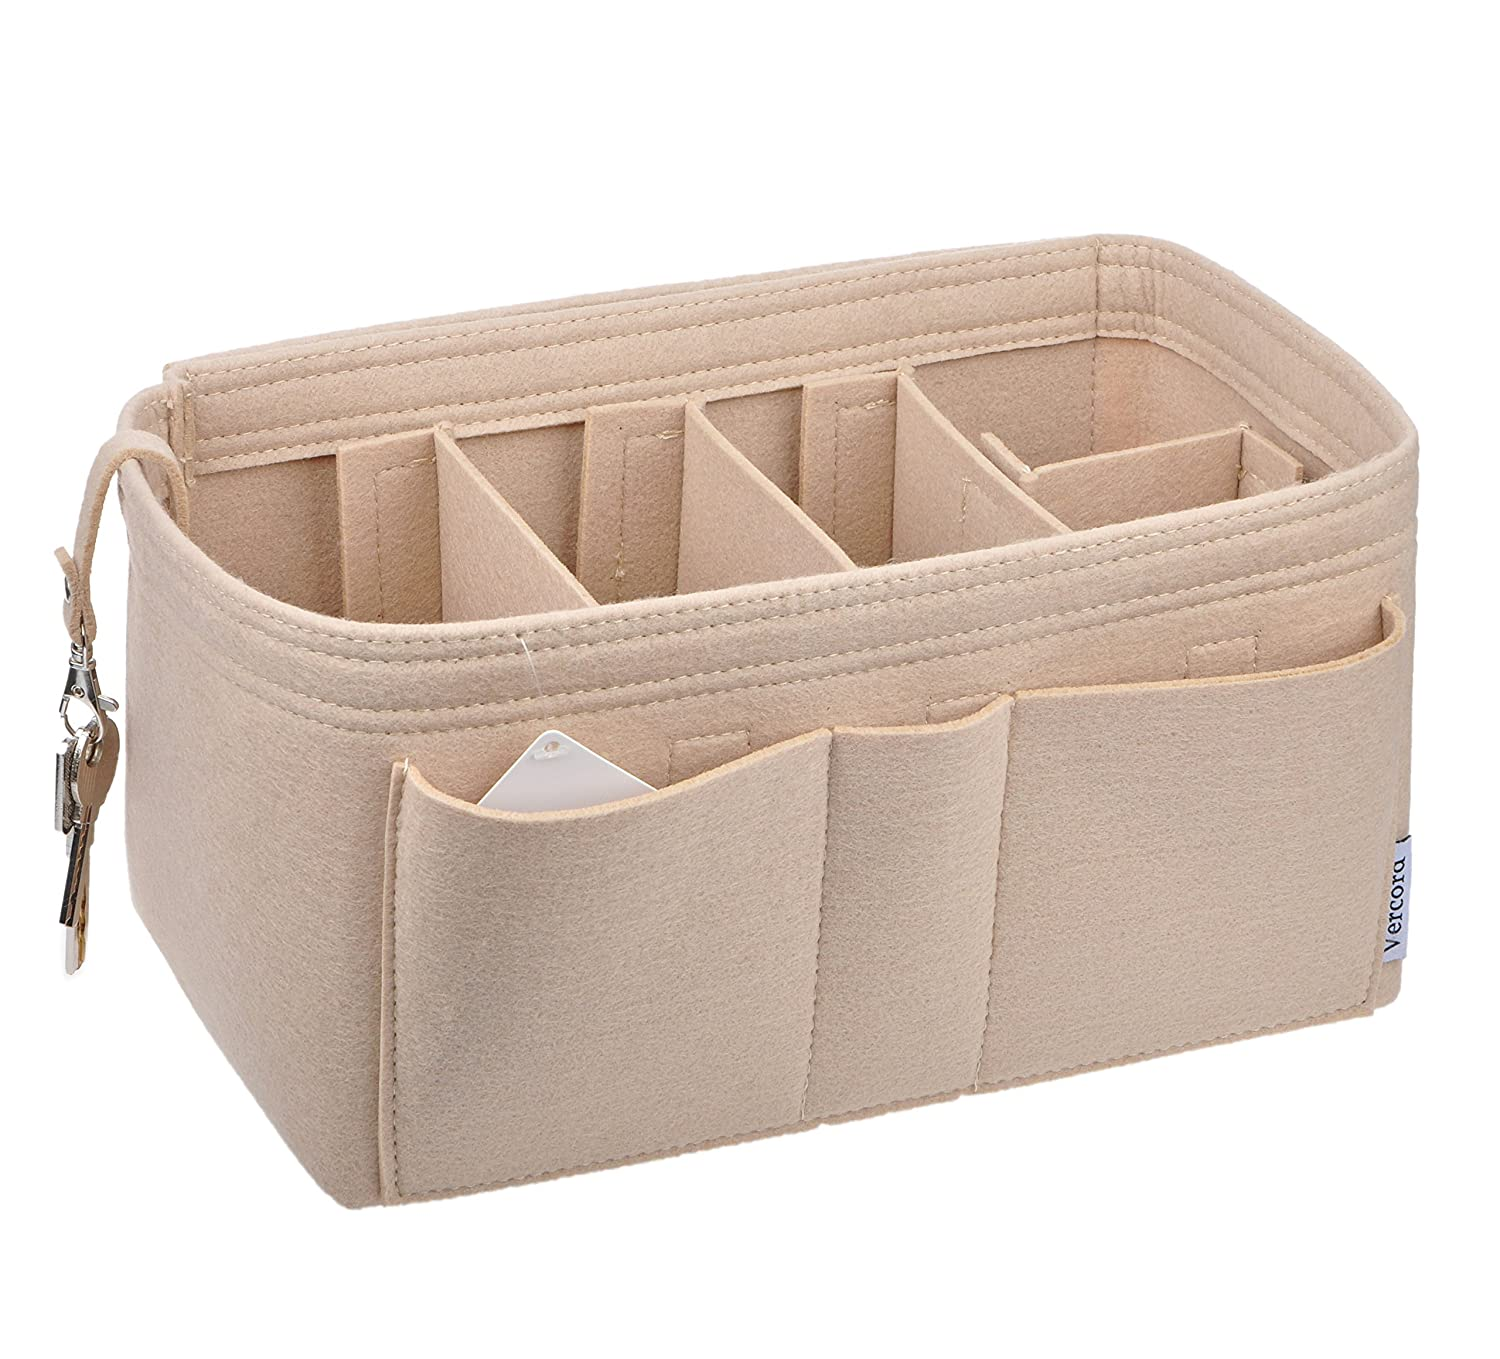 77915aad9ce Amazon.com  Vercord Felt Purse Shaper Organizer Insert Divider For Handbag  Tote LV Bags 11 Pockets  Shoes